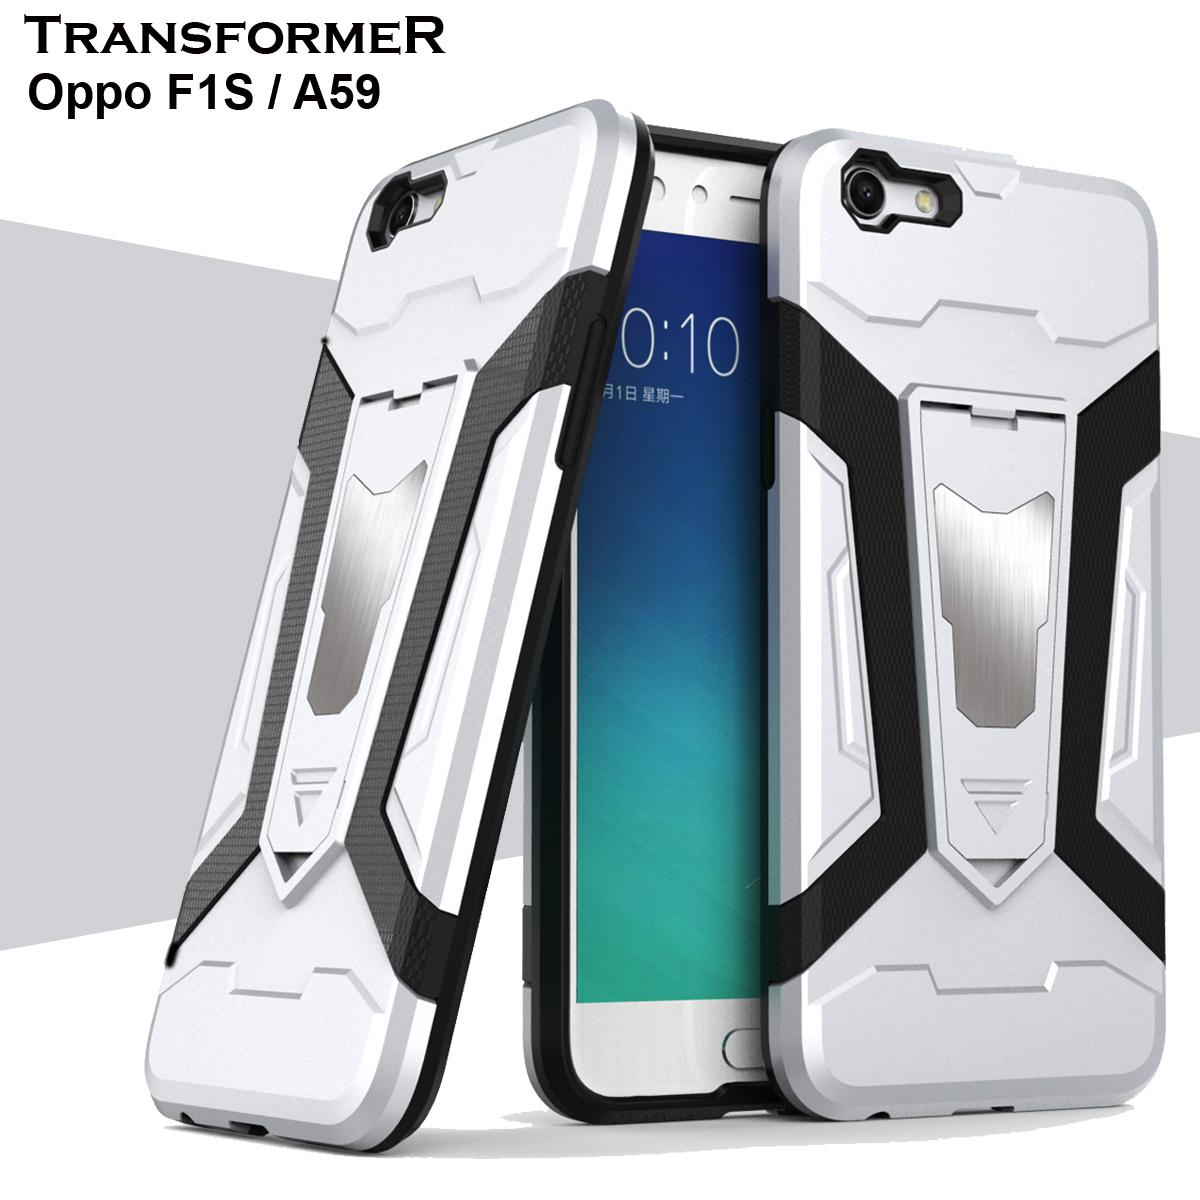 Case Anticrack Anti Crack Shock Benturan Elegant Softcase For Oppo Fuze F1 S A59 Putih Rp 27550